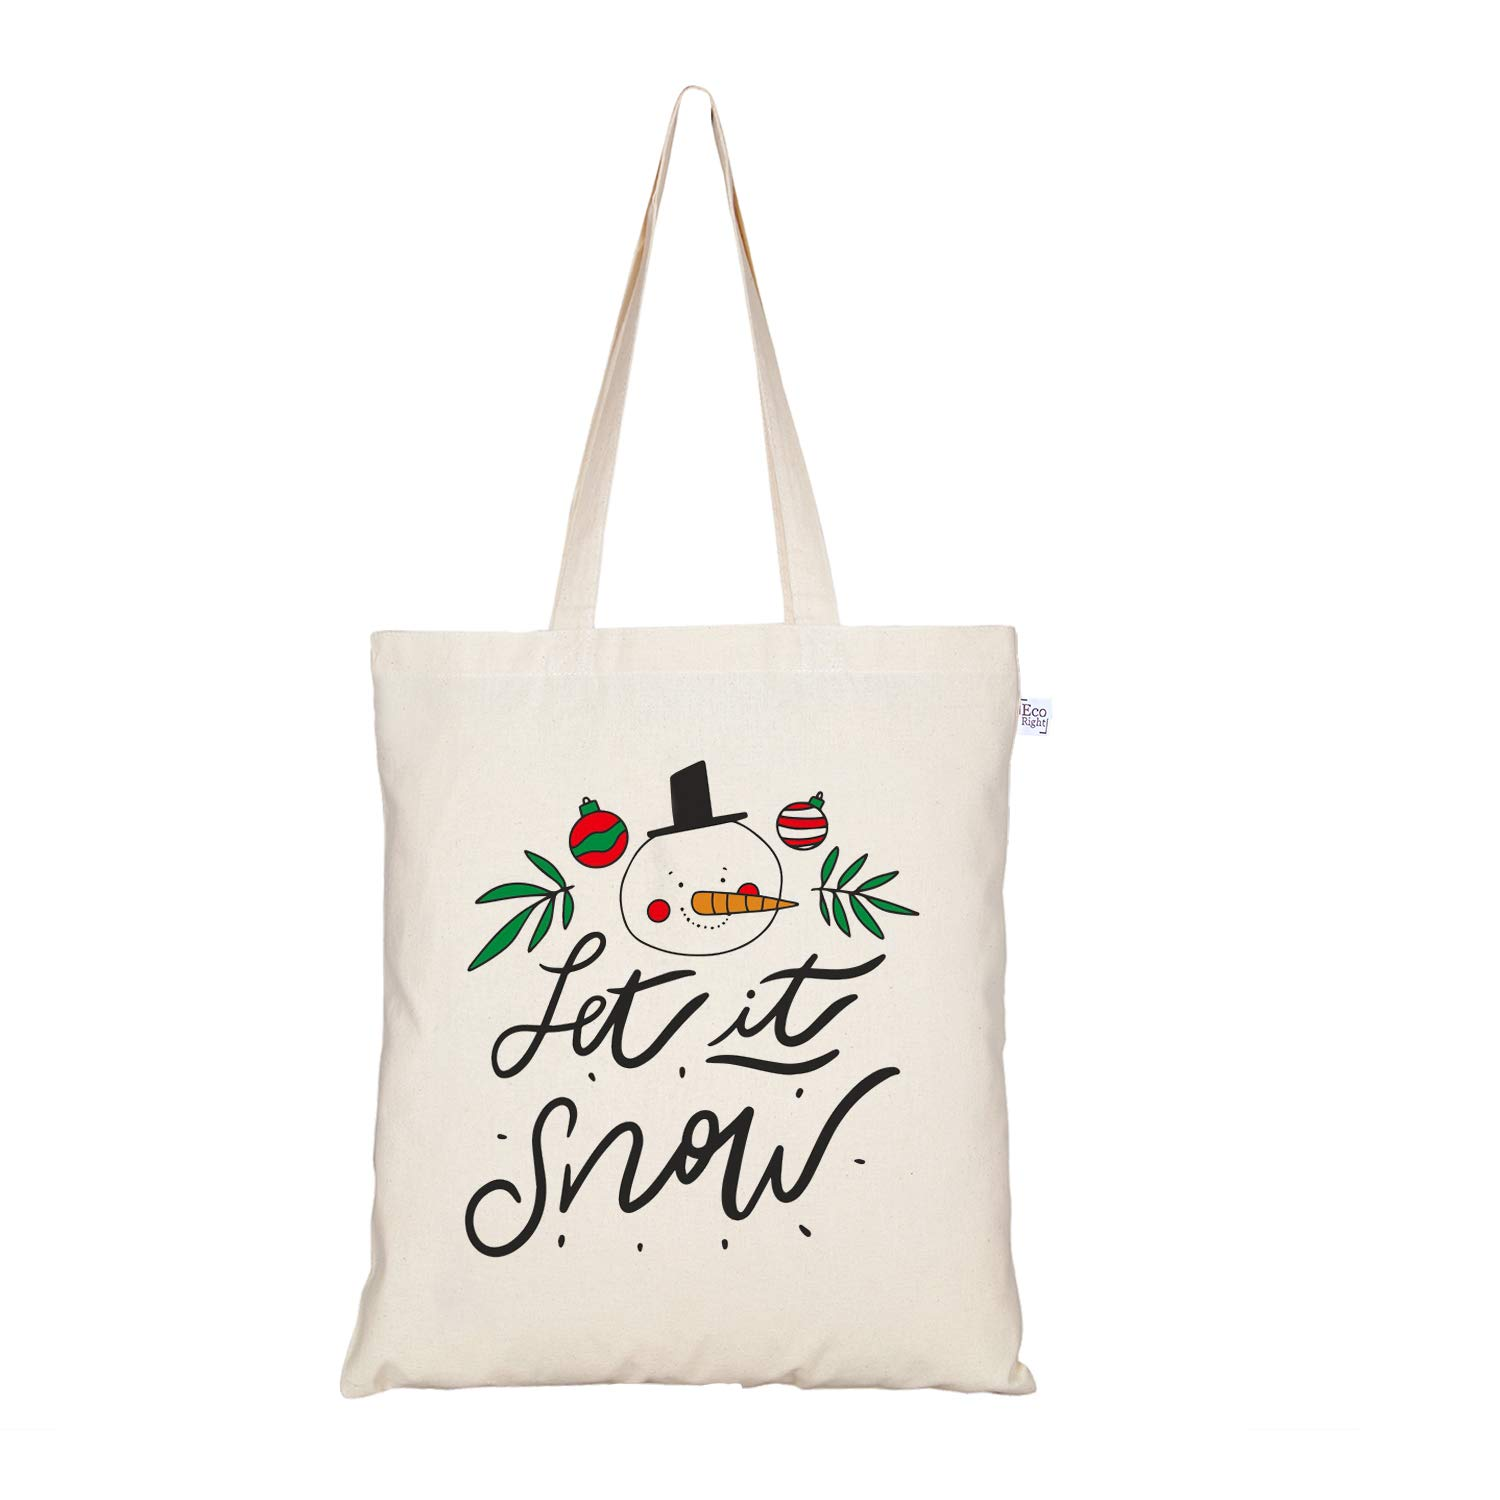 EcoRight Cotton Canvas Let it snow Christmas Women Tote Bag Reusable Eco-friendly Printed Totes for Shopping School Work Gym Travel Beach, 15 x 16 inches